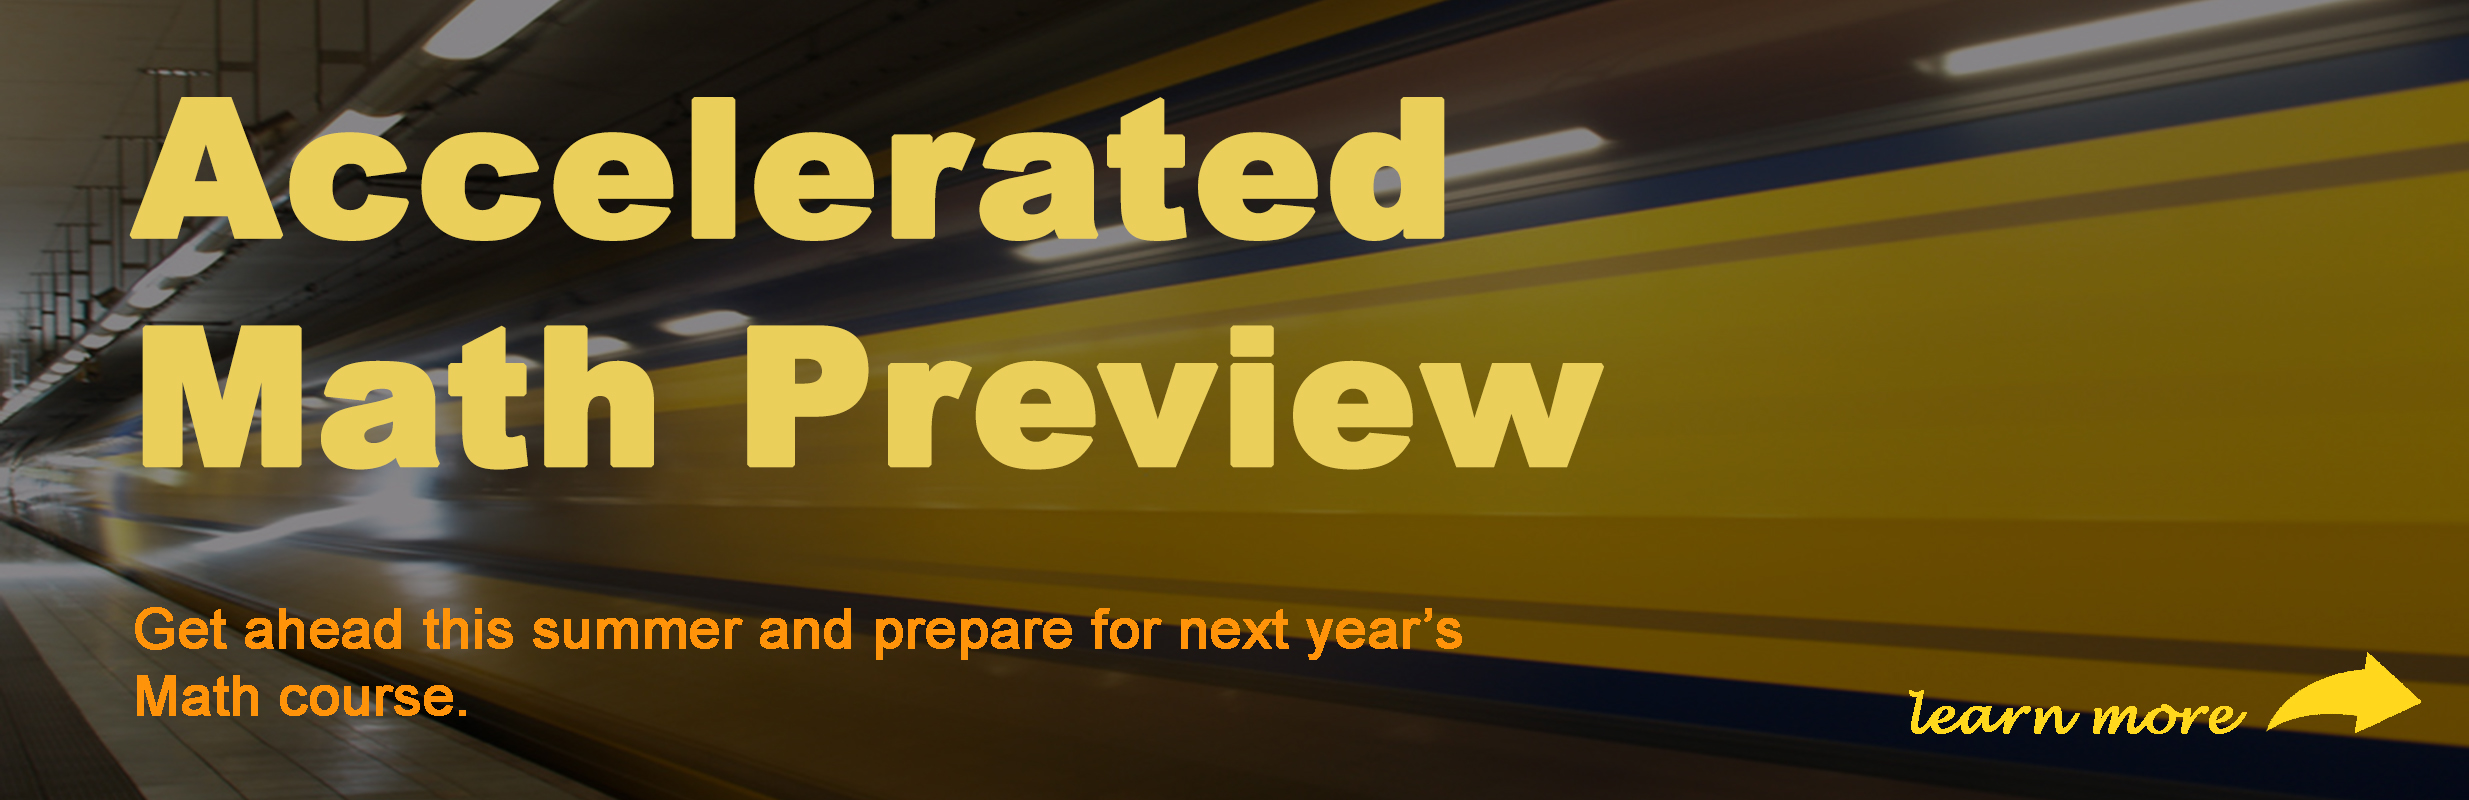 Accelerated Math Preview